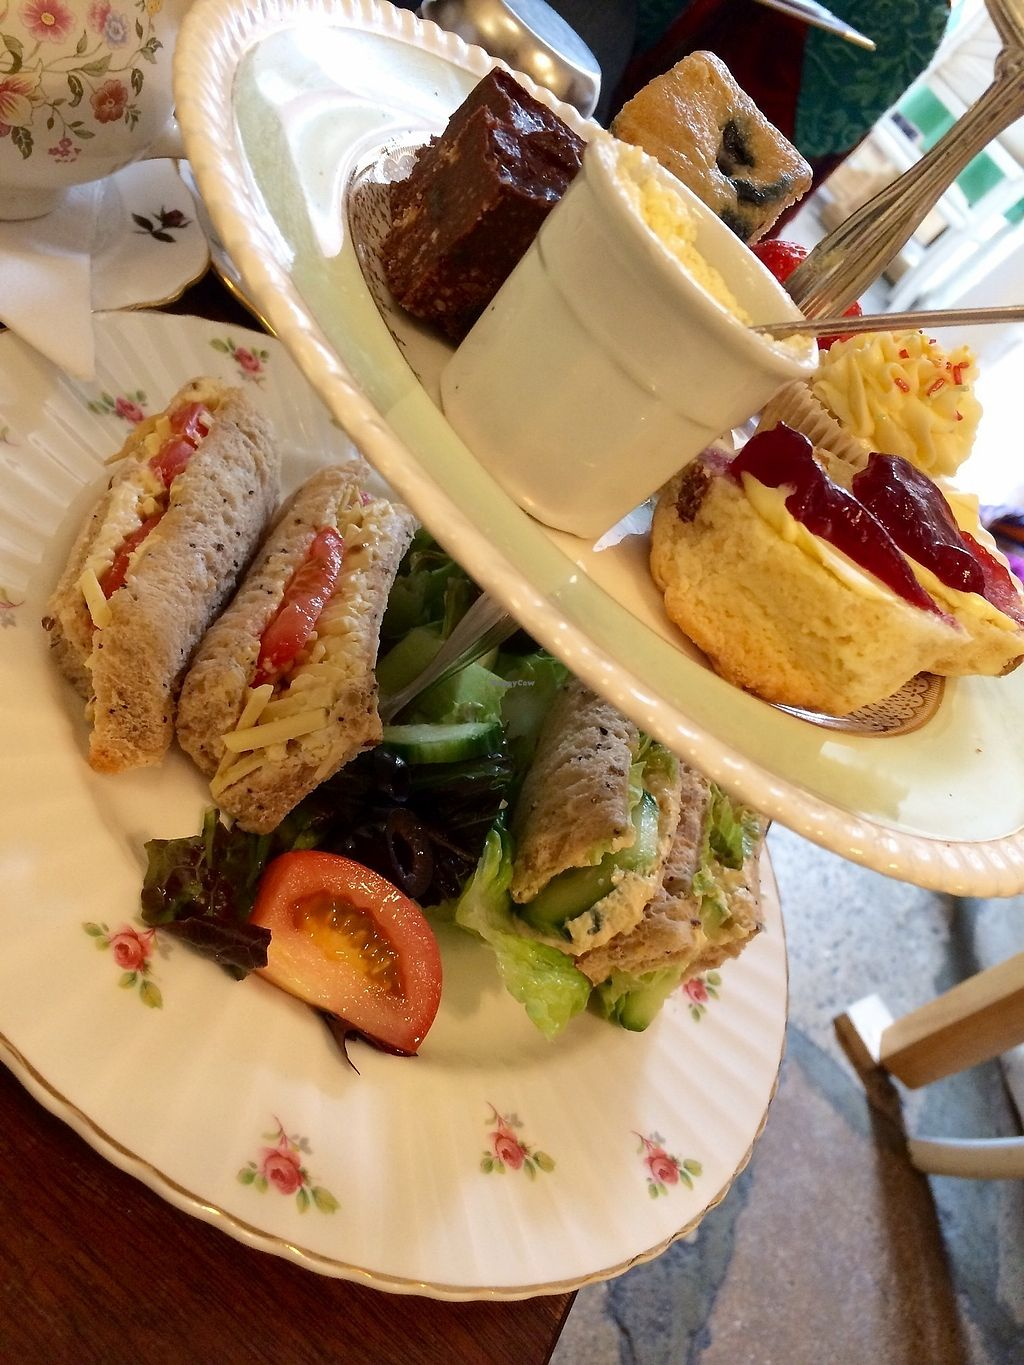 """Photo of The Exclusive Cake Shop & Vintage Tearoom   by <a href=""""/members/profile/Megsriley_82"""">Megsriley_82</a> <br/>Vegan cream tea <br/> April 15, 2018  - <a href='/contact/abuse/image/71733/386311'>Report</a>"""